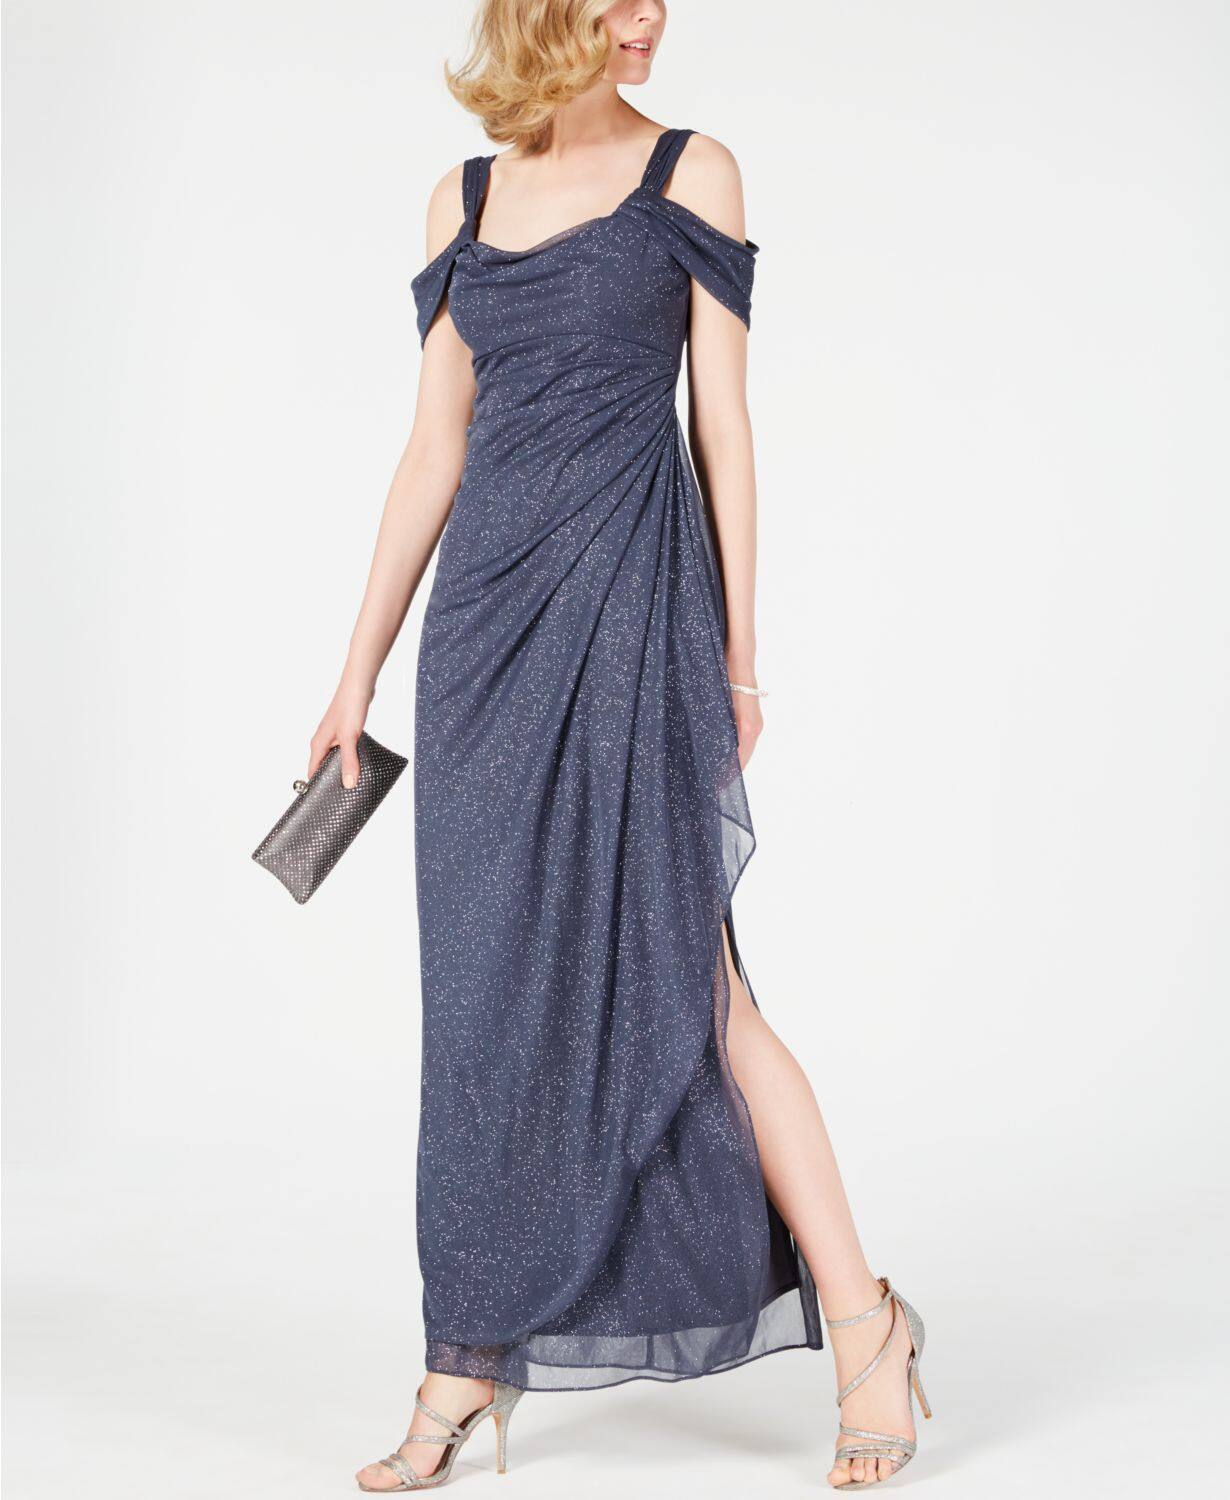 Alex Evenings Cold-Shoulder Draped Metallic Gown $97.30 + fs